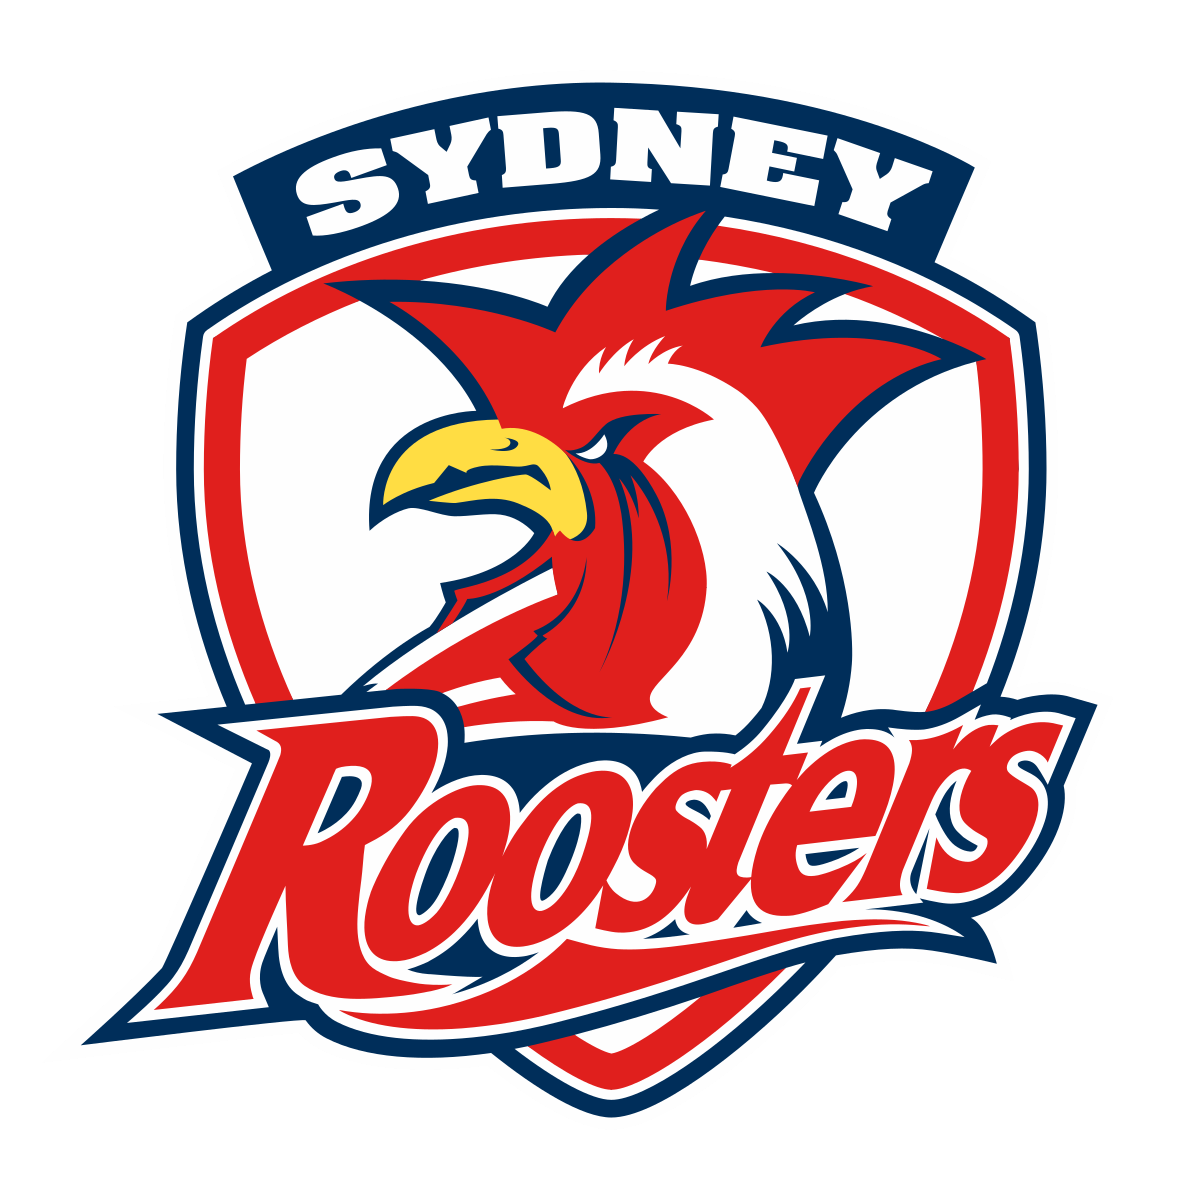 Places Sydney Roosters